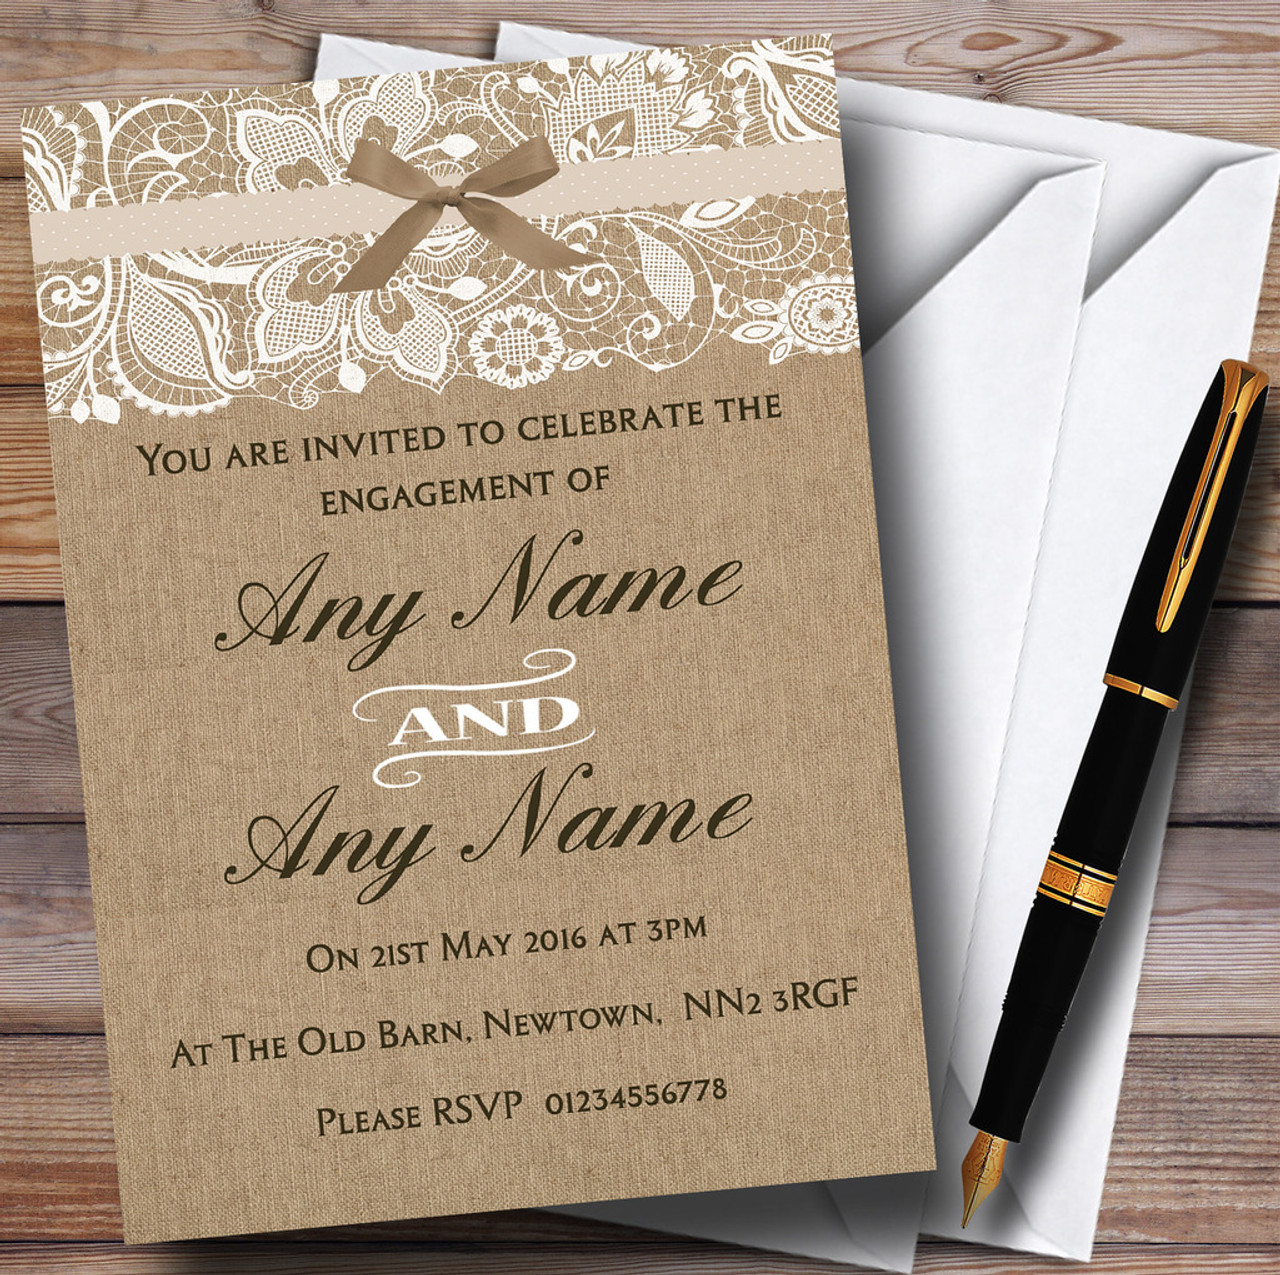 Personalised Party Invitations - Engagement Party Invitations ...